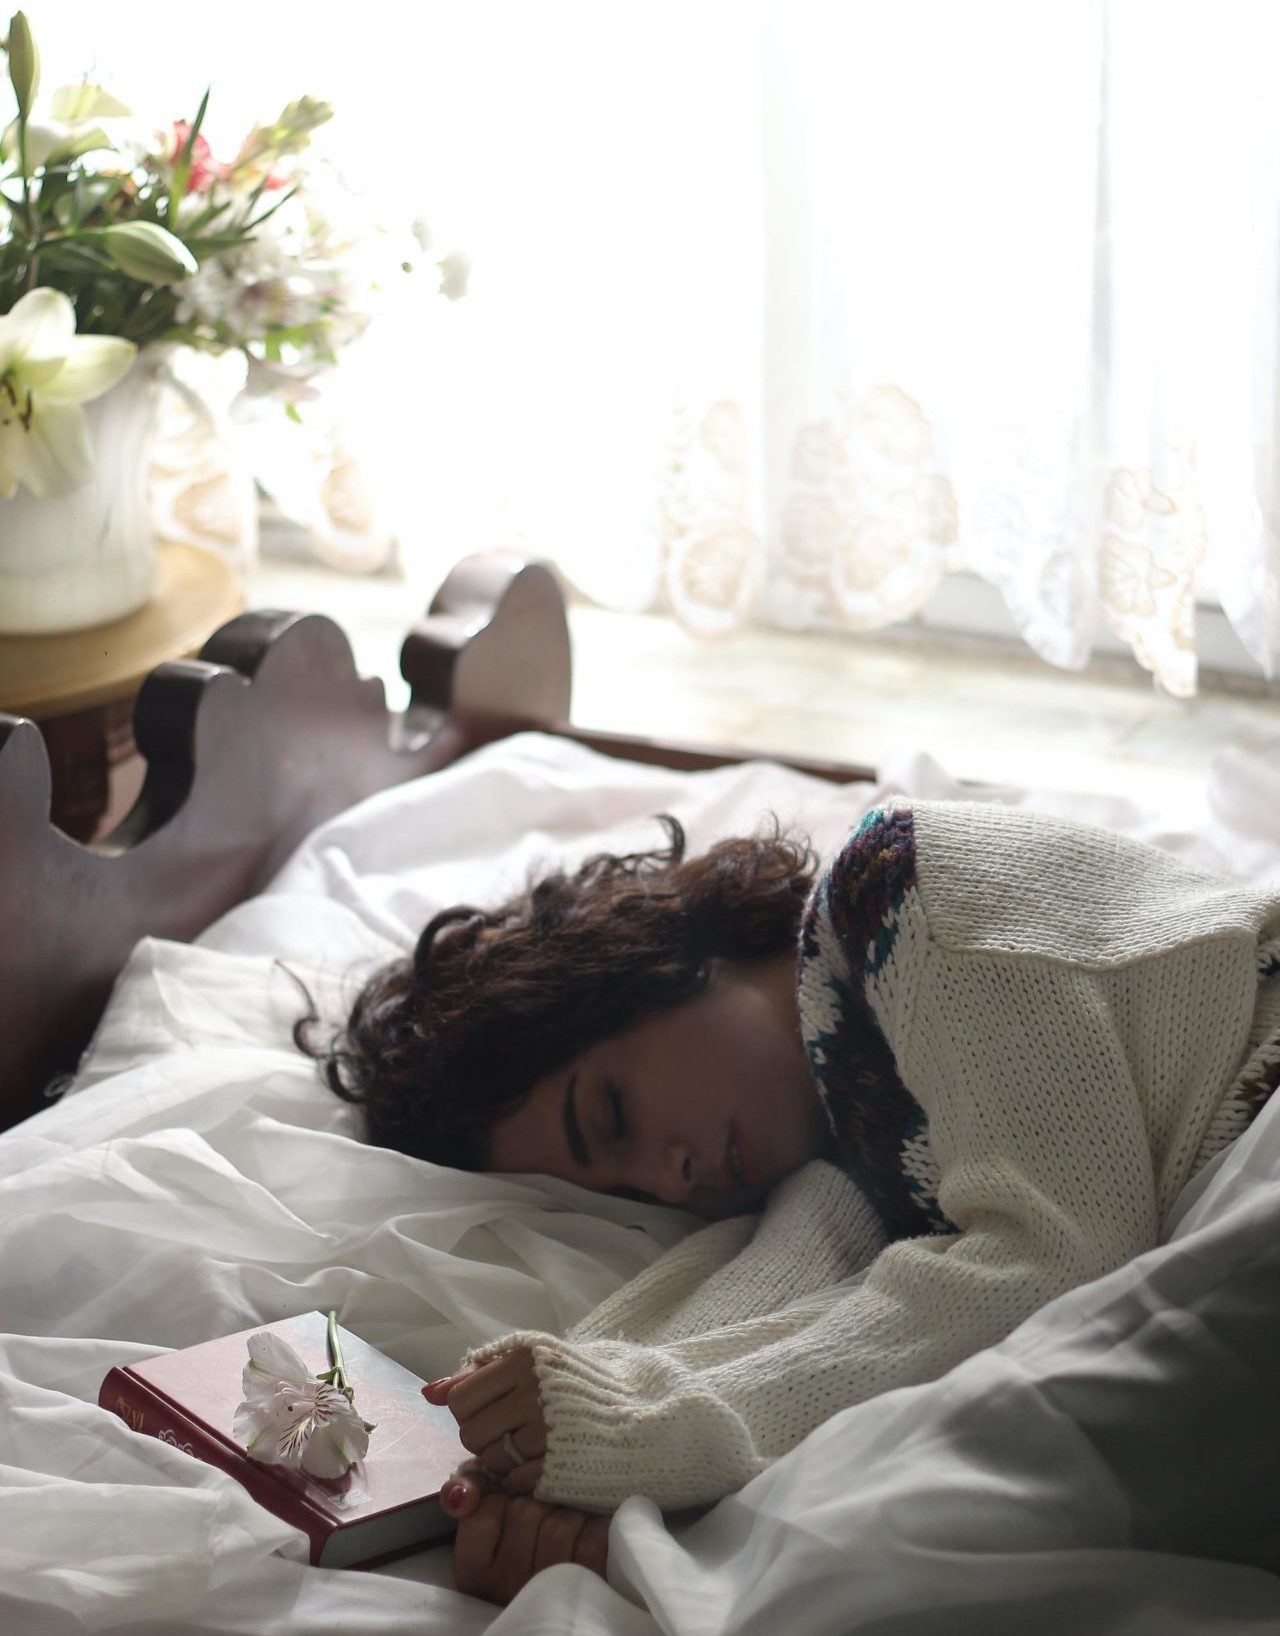 Getting sunlight in the morning will help you rest better at night so you won't sleep too much during th eday.